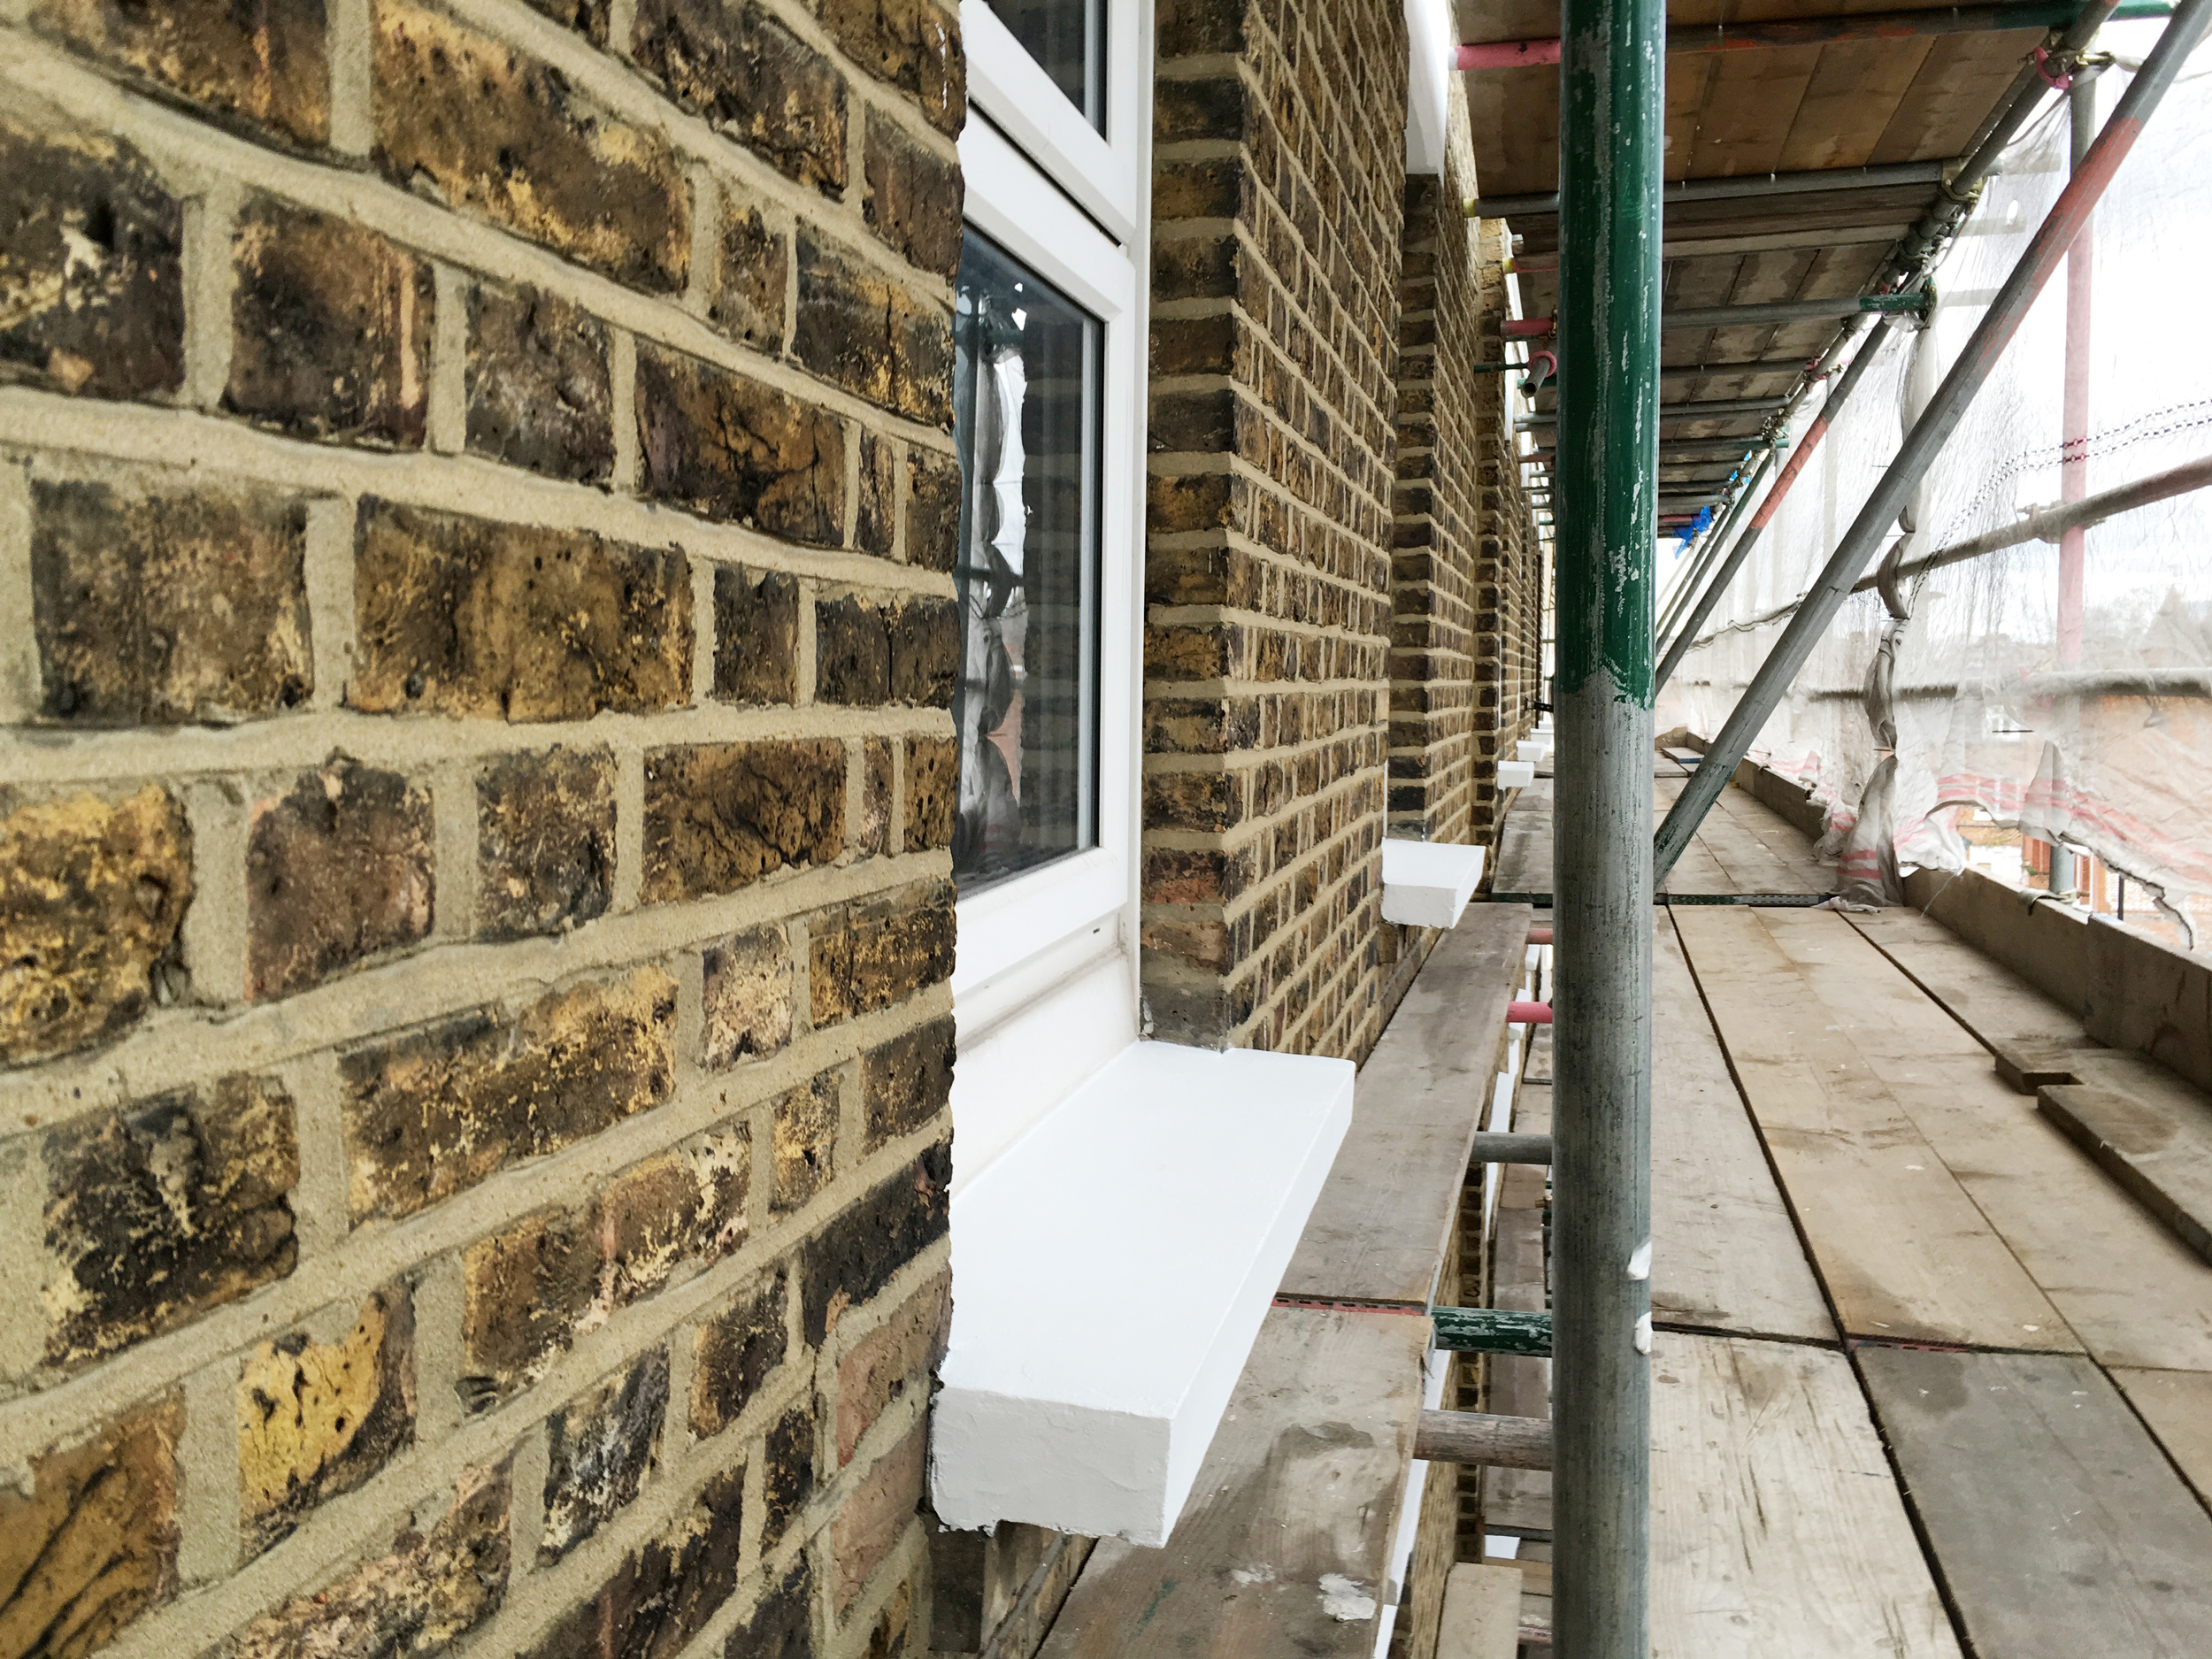 #NHRenovations #Painter #Decorator #London #BroadhurstGardens #Westhampstead #Scaffolding #Dulux #Weathershield #Windowsill #Commercial #Exterior #Building